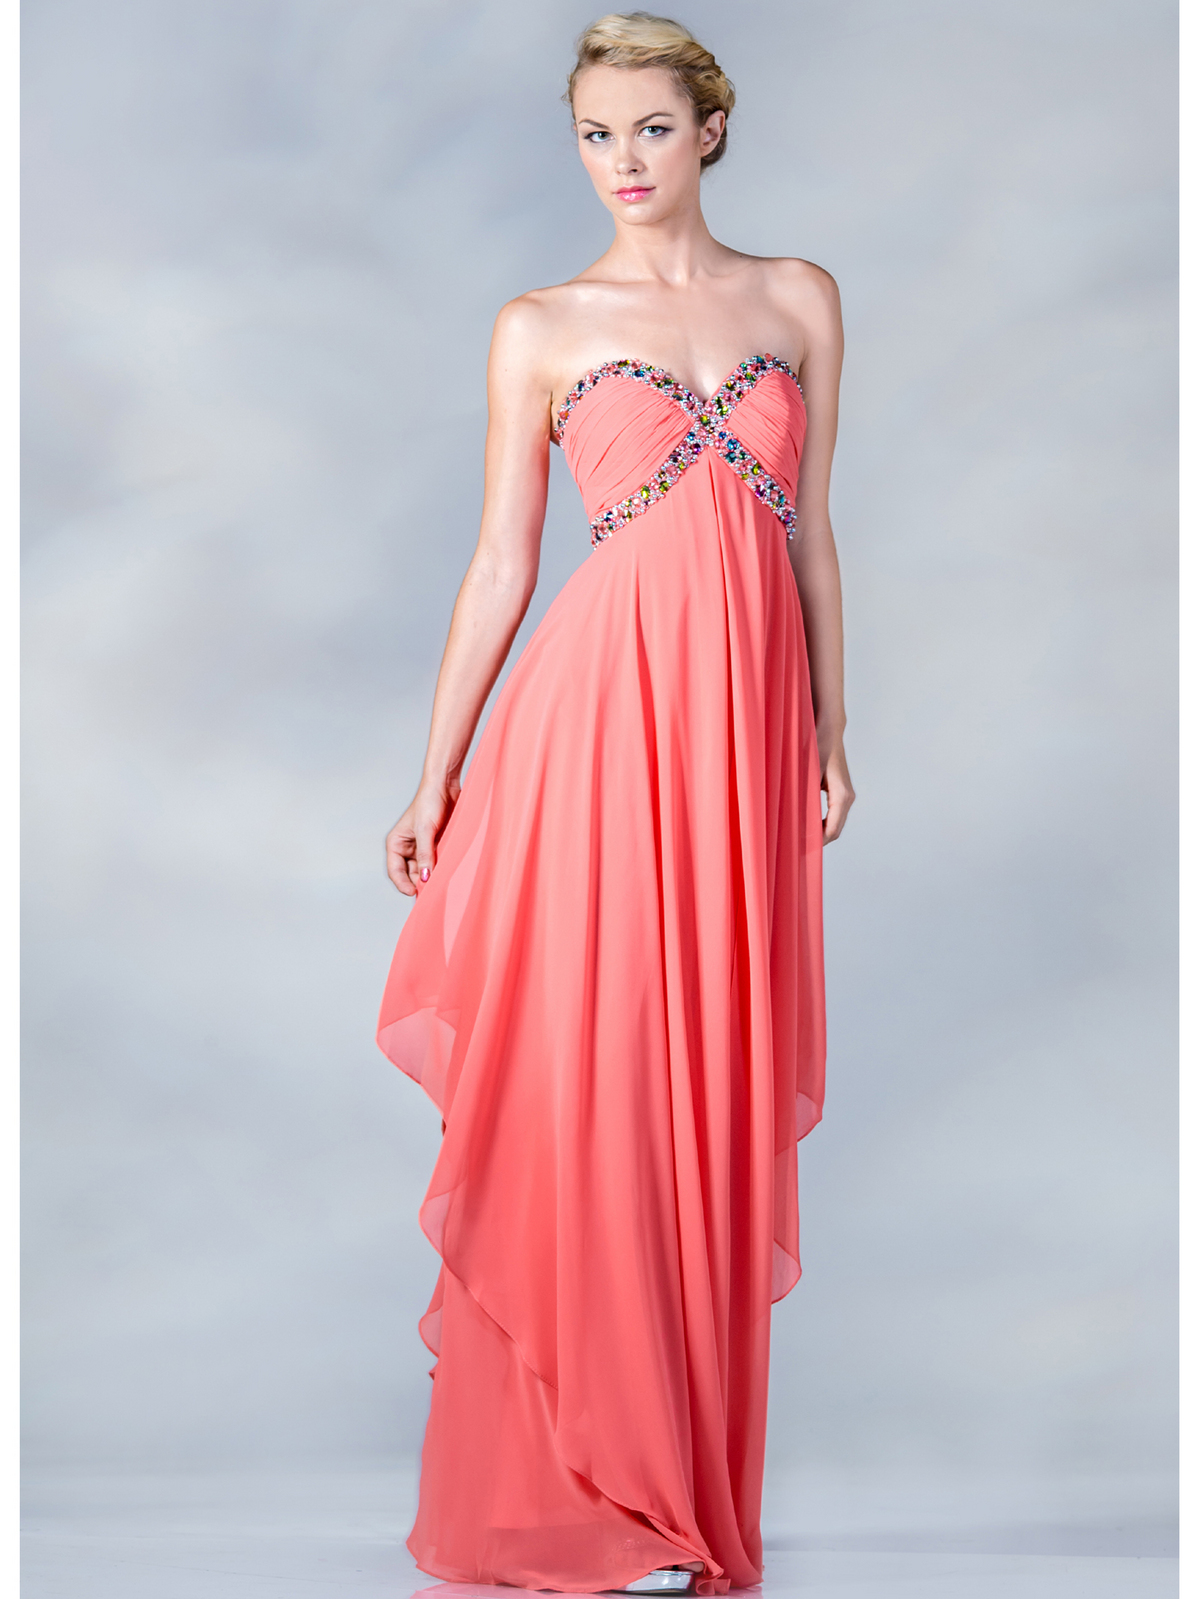 Strapless Beaded Prom Dresses